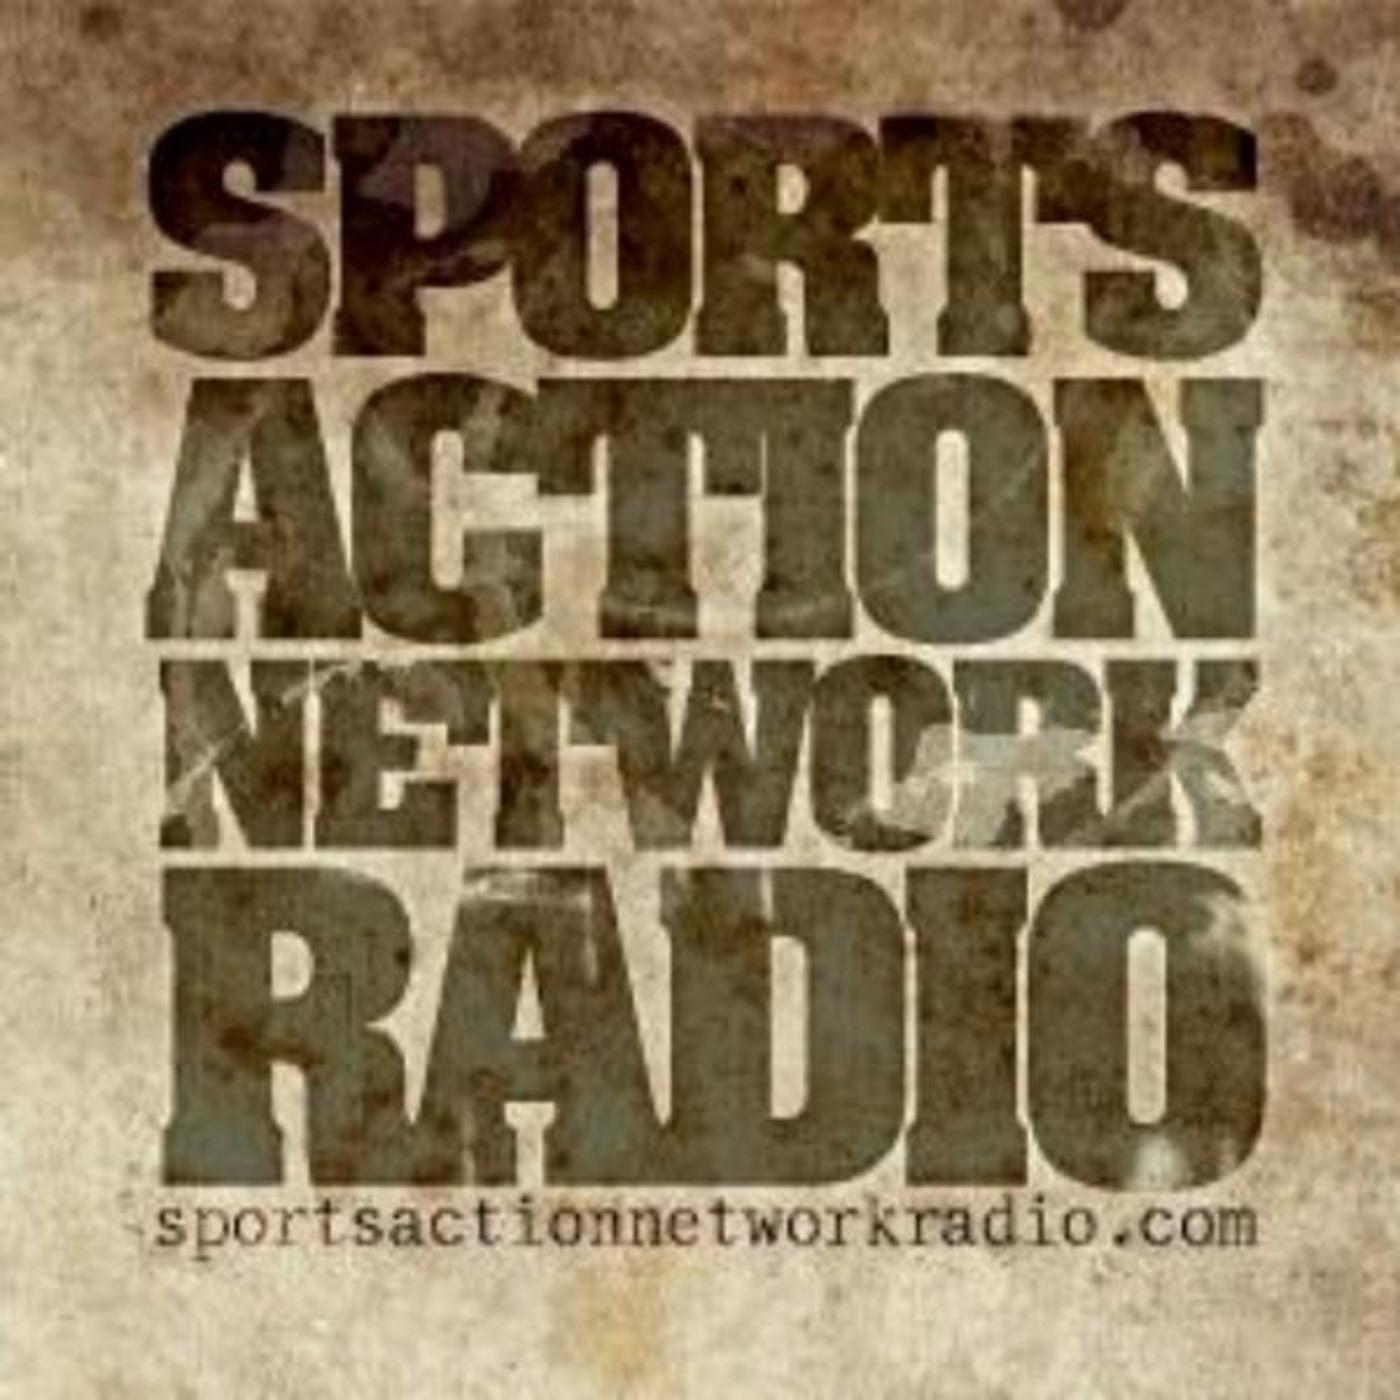 Sports Action Network Radio